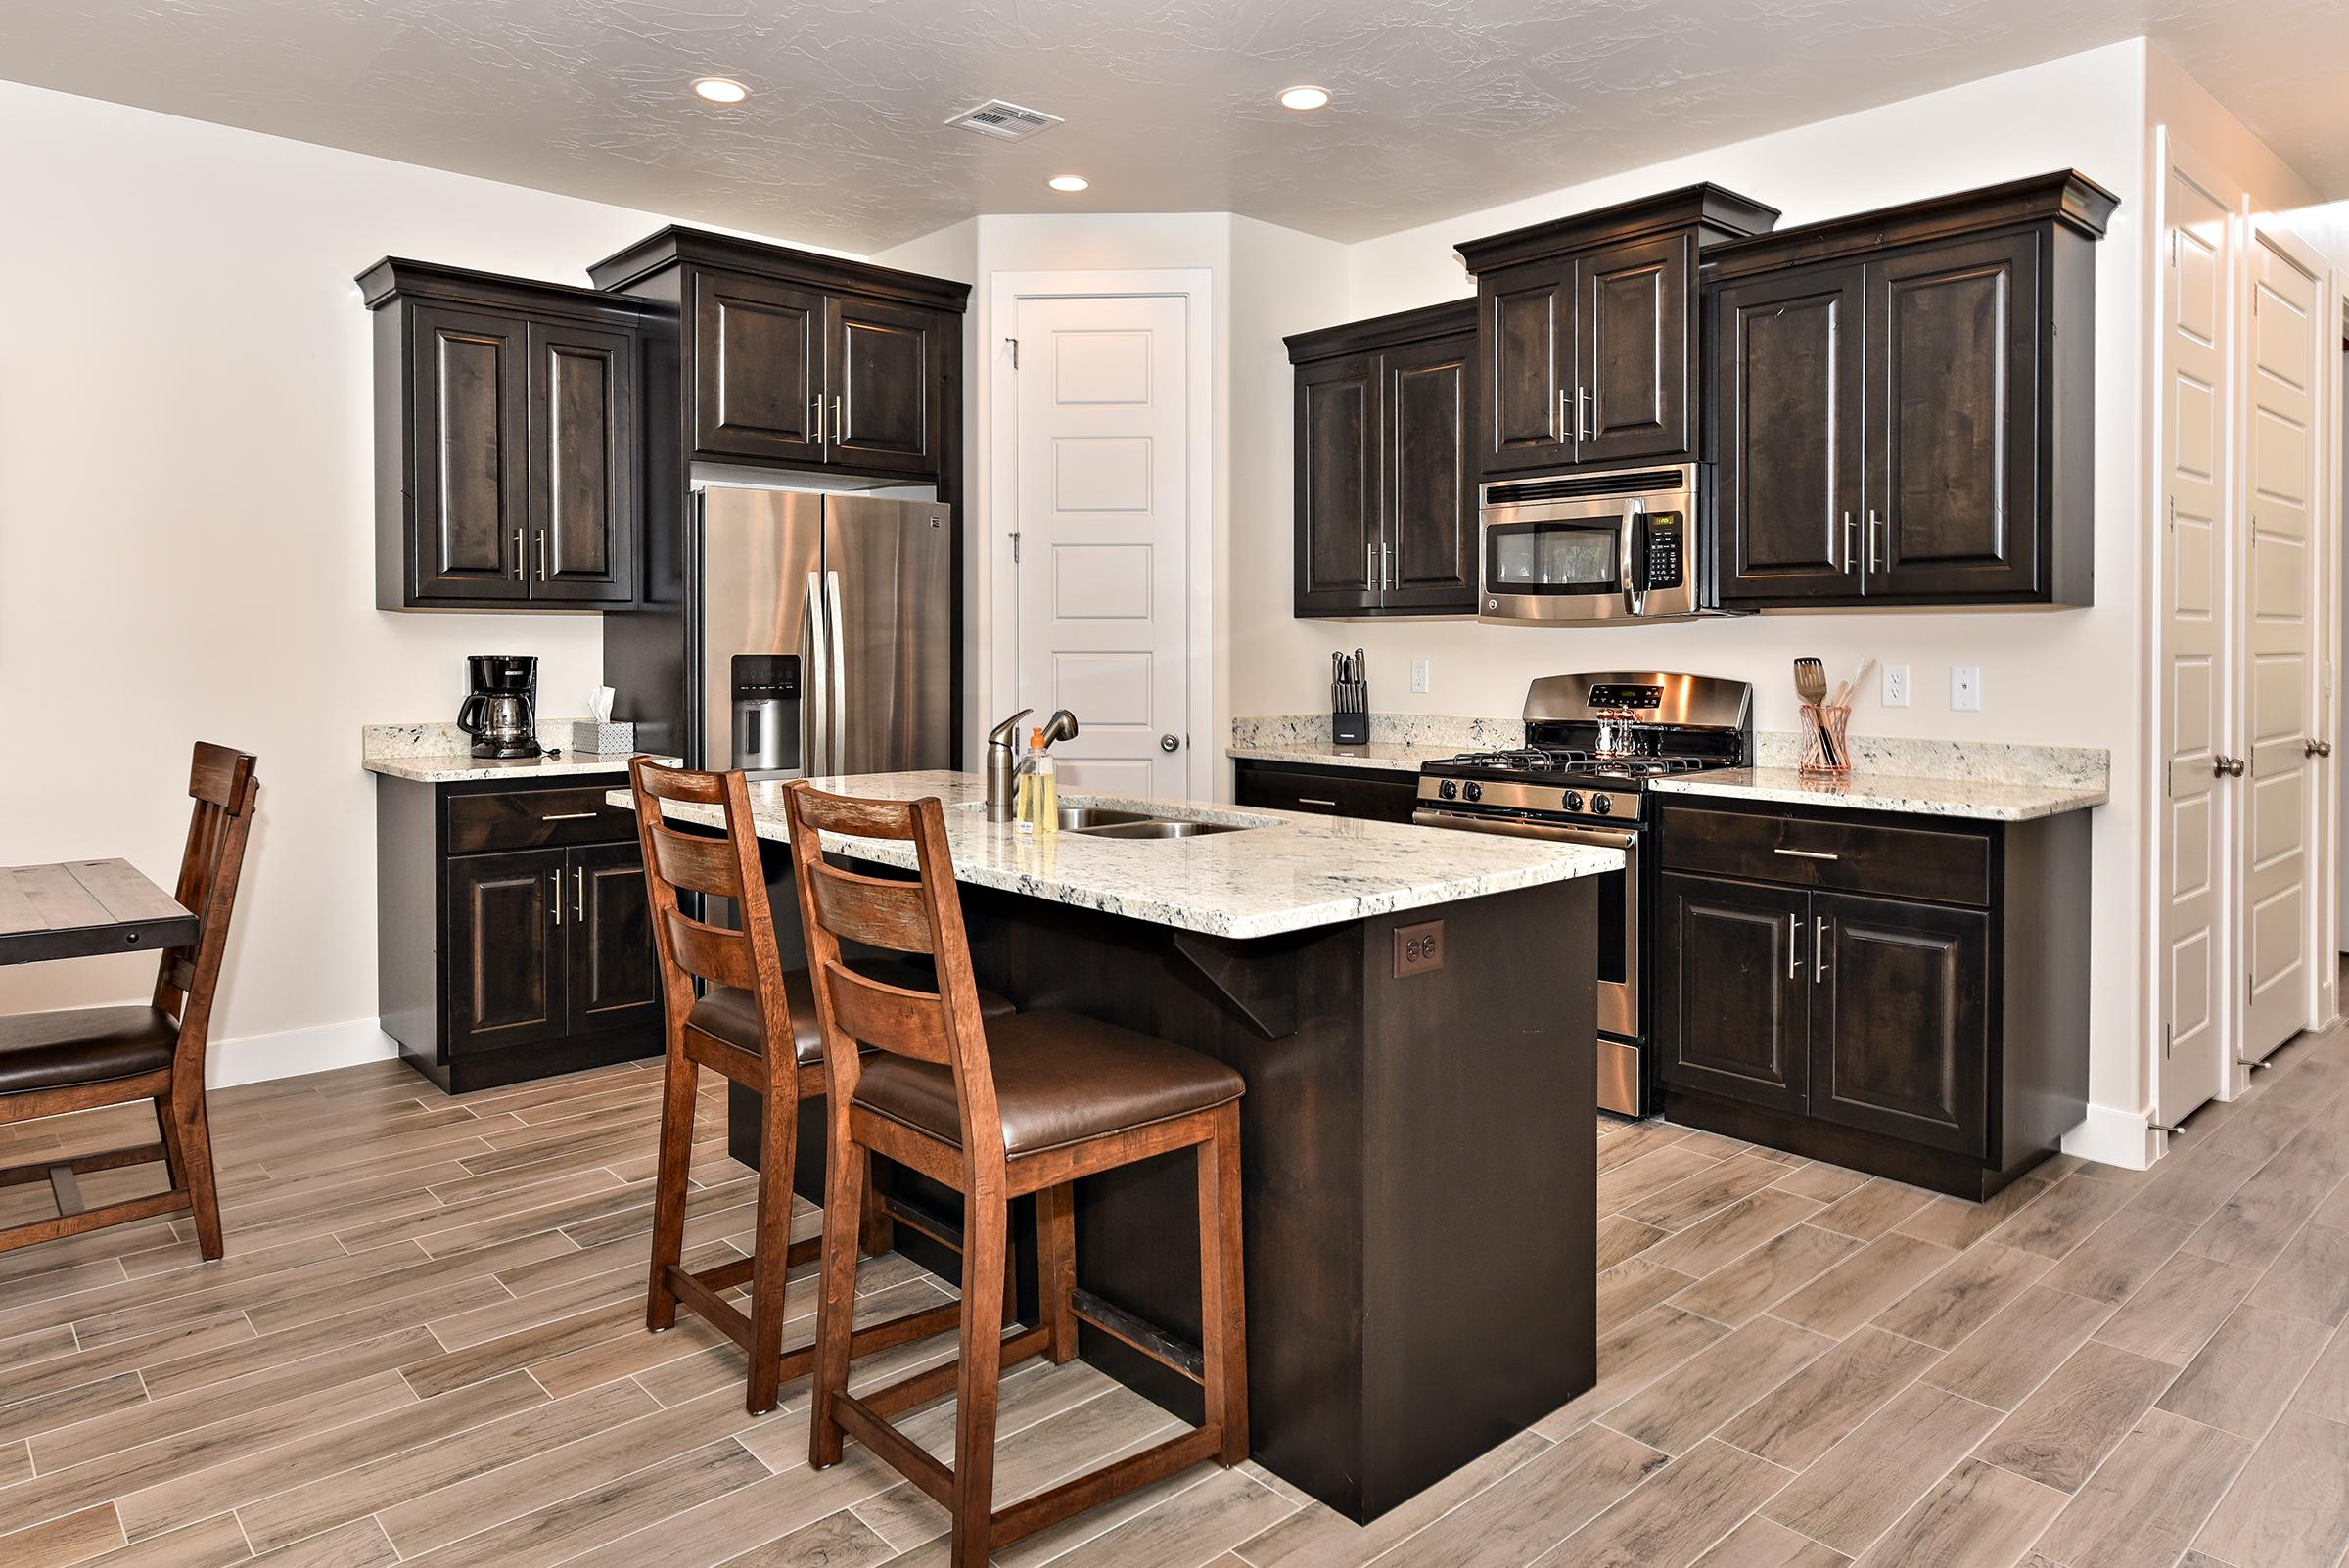 The kitchen is fully stocked with all the dishes, cookware, baking pans, and cutlery you will need for meal preparations and includes stainless steel appliances and granite counter tops.